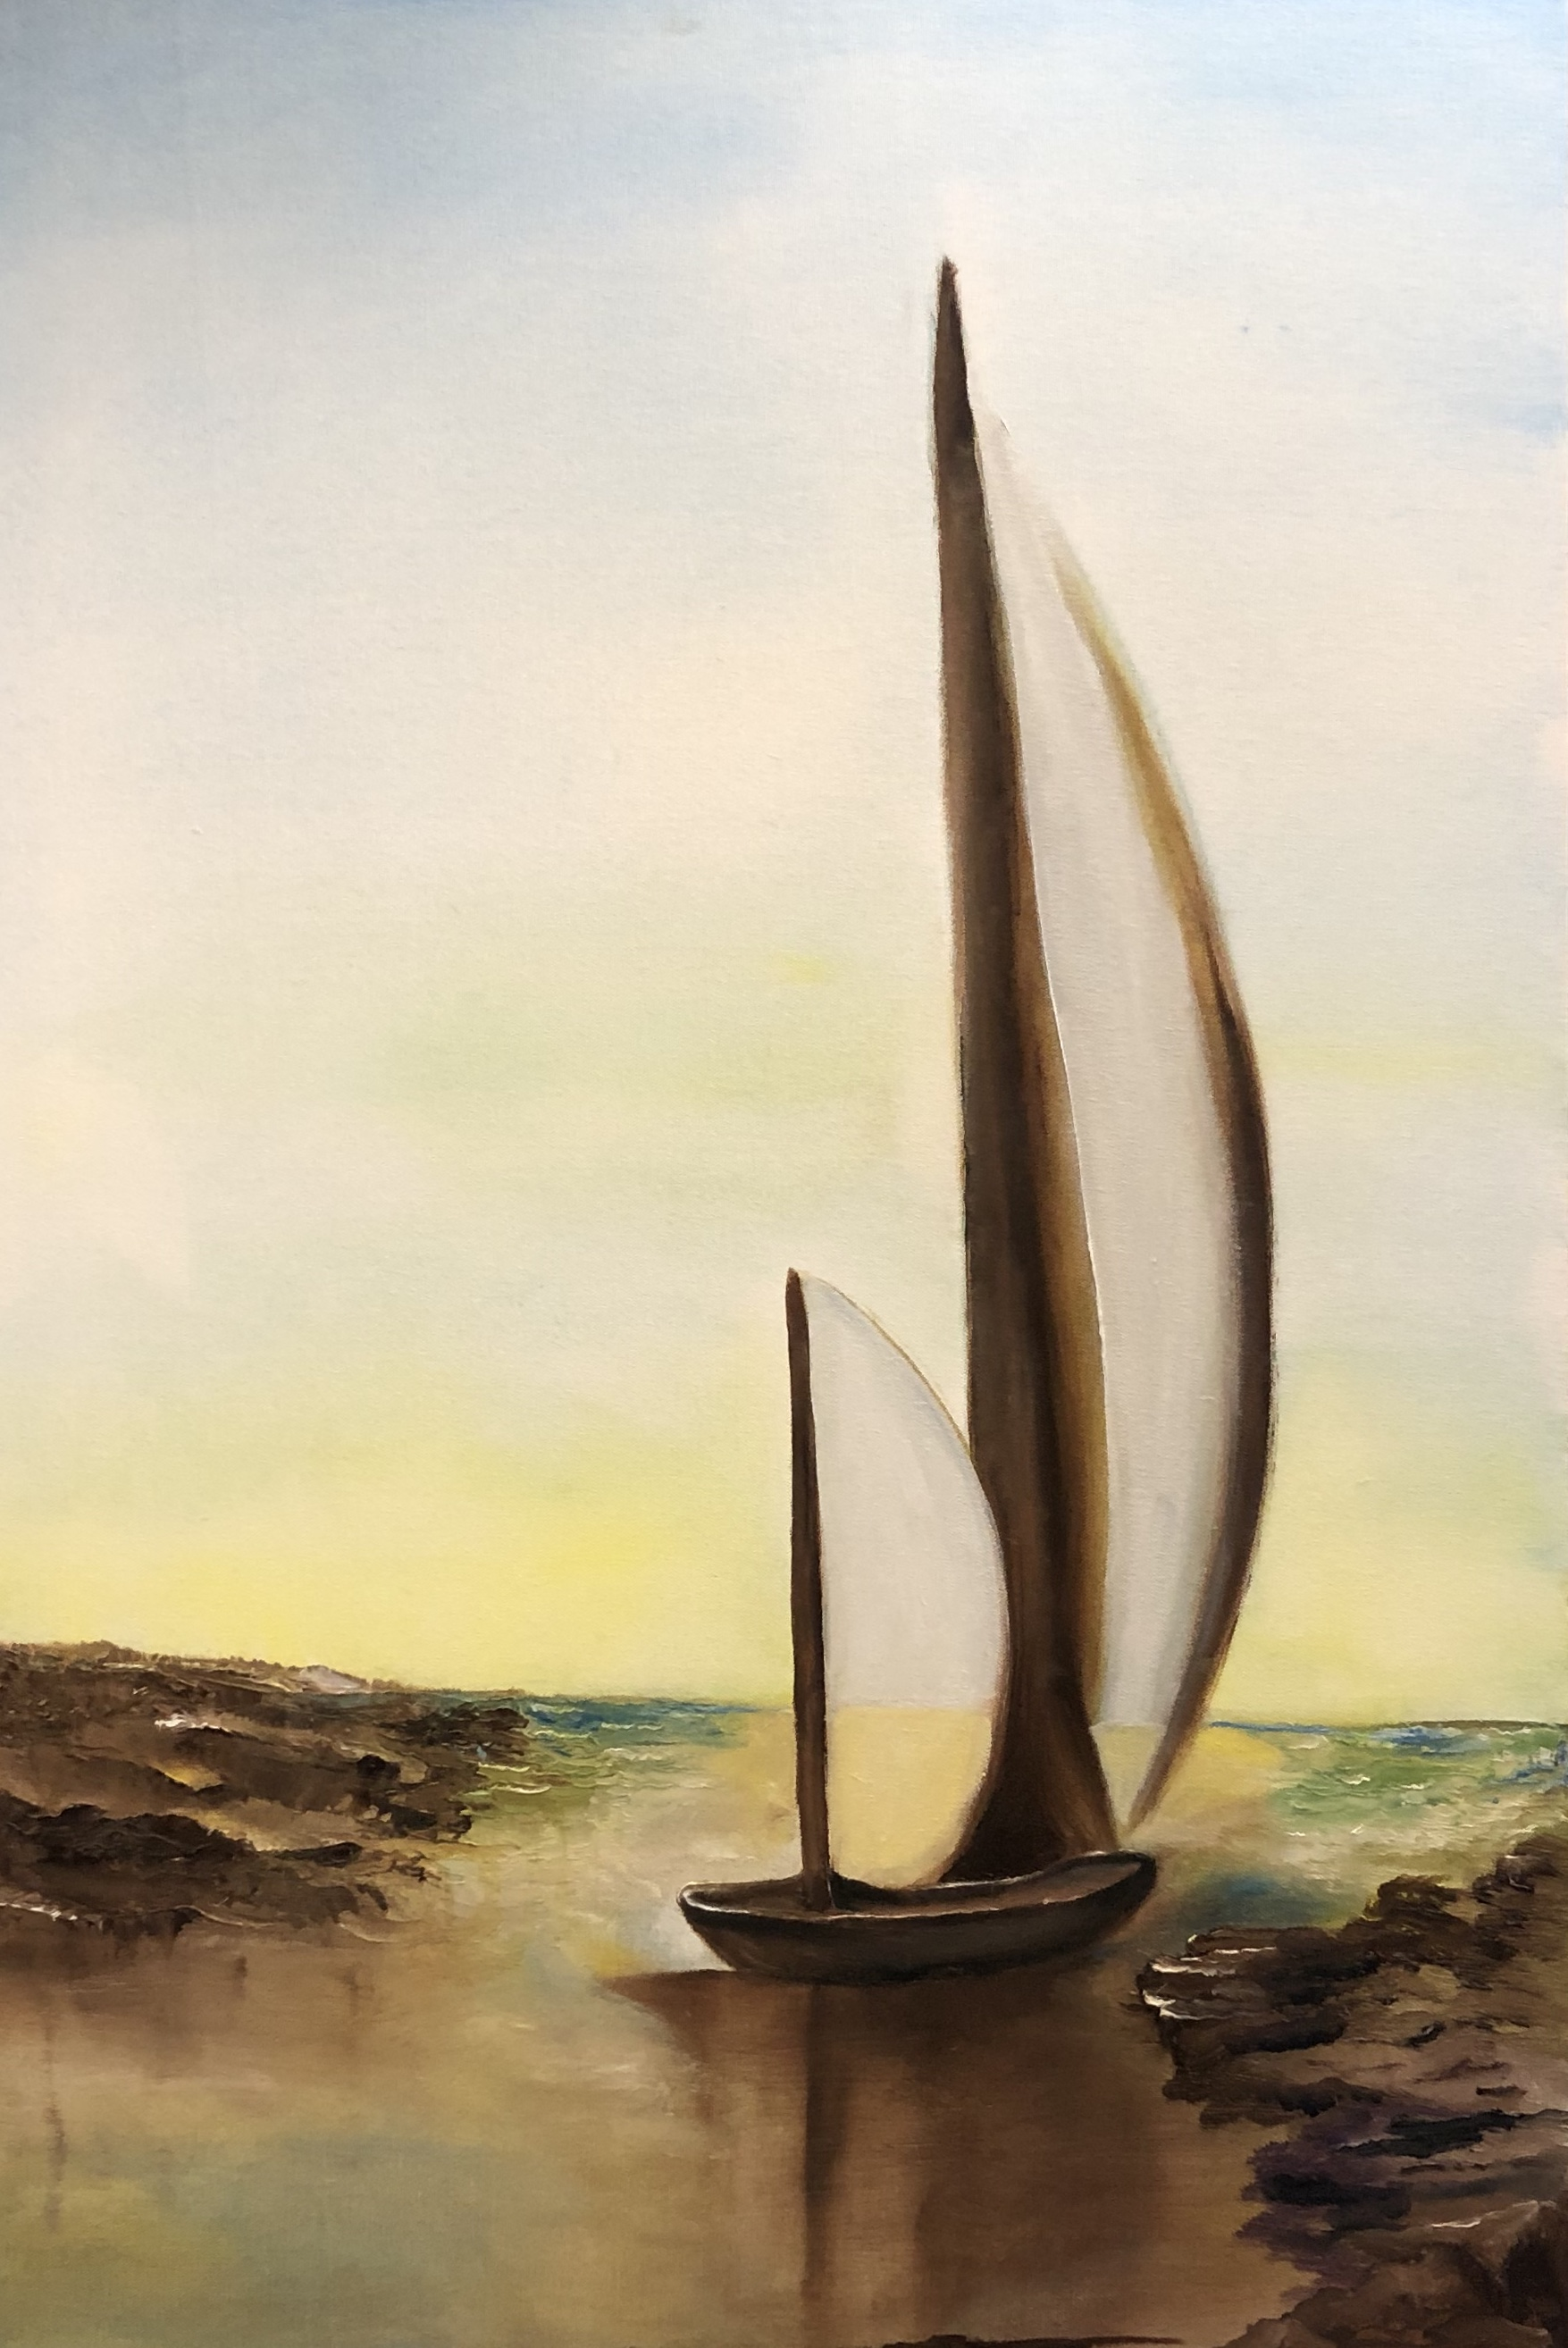 Sailing 1 by Patrick Irish | ArtworkNetwork.com